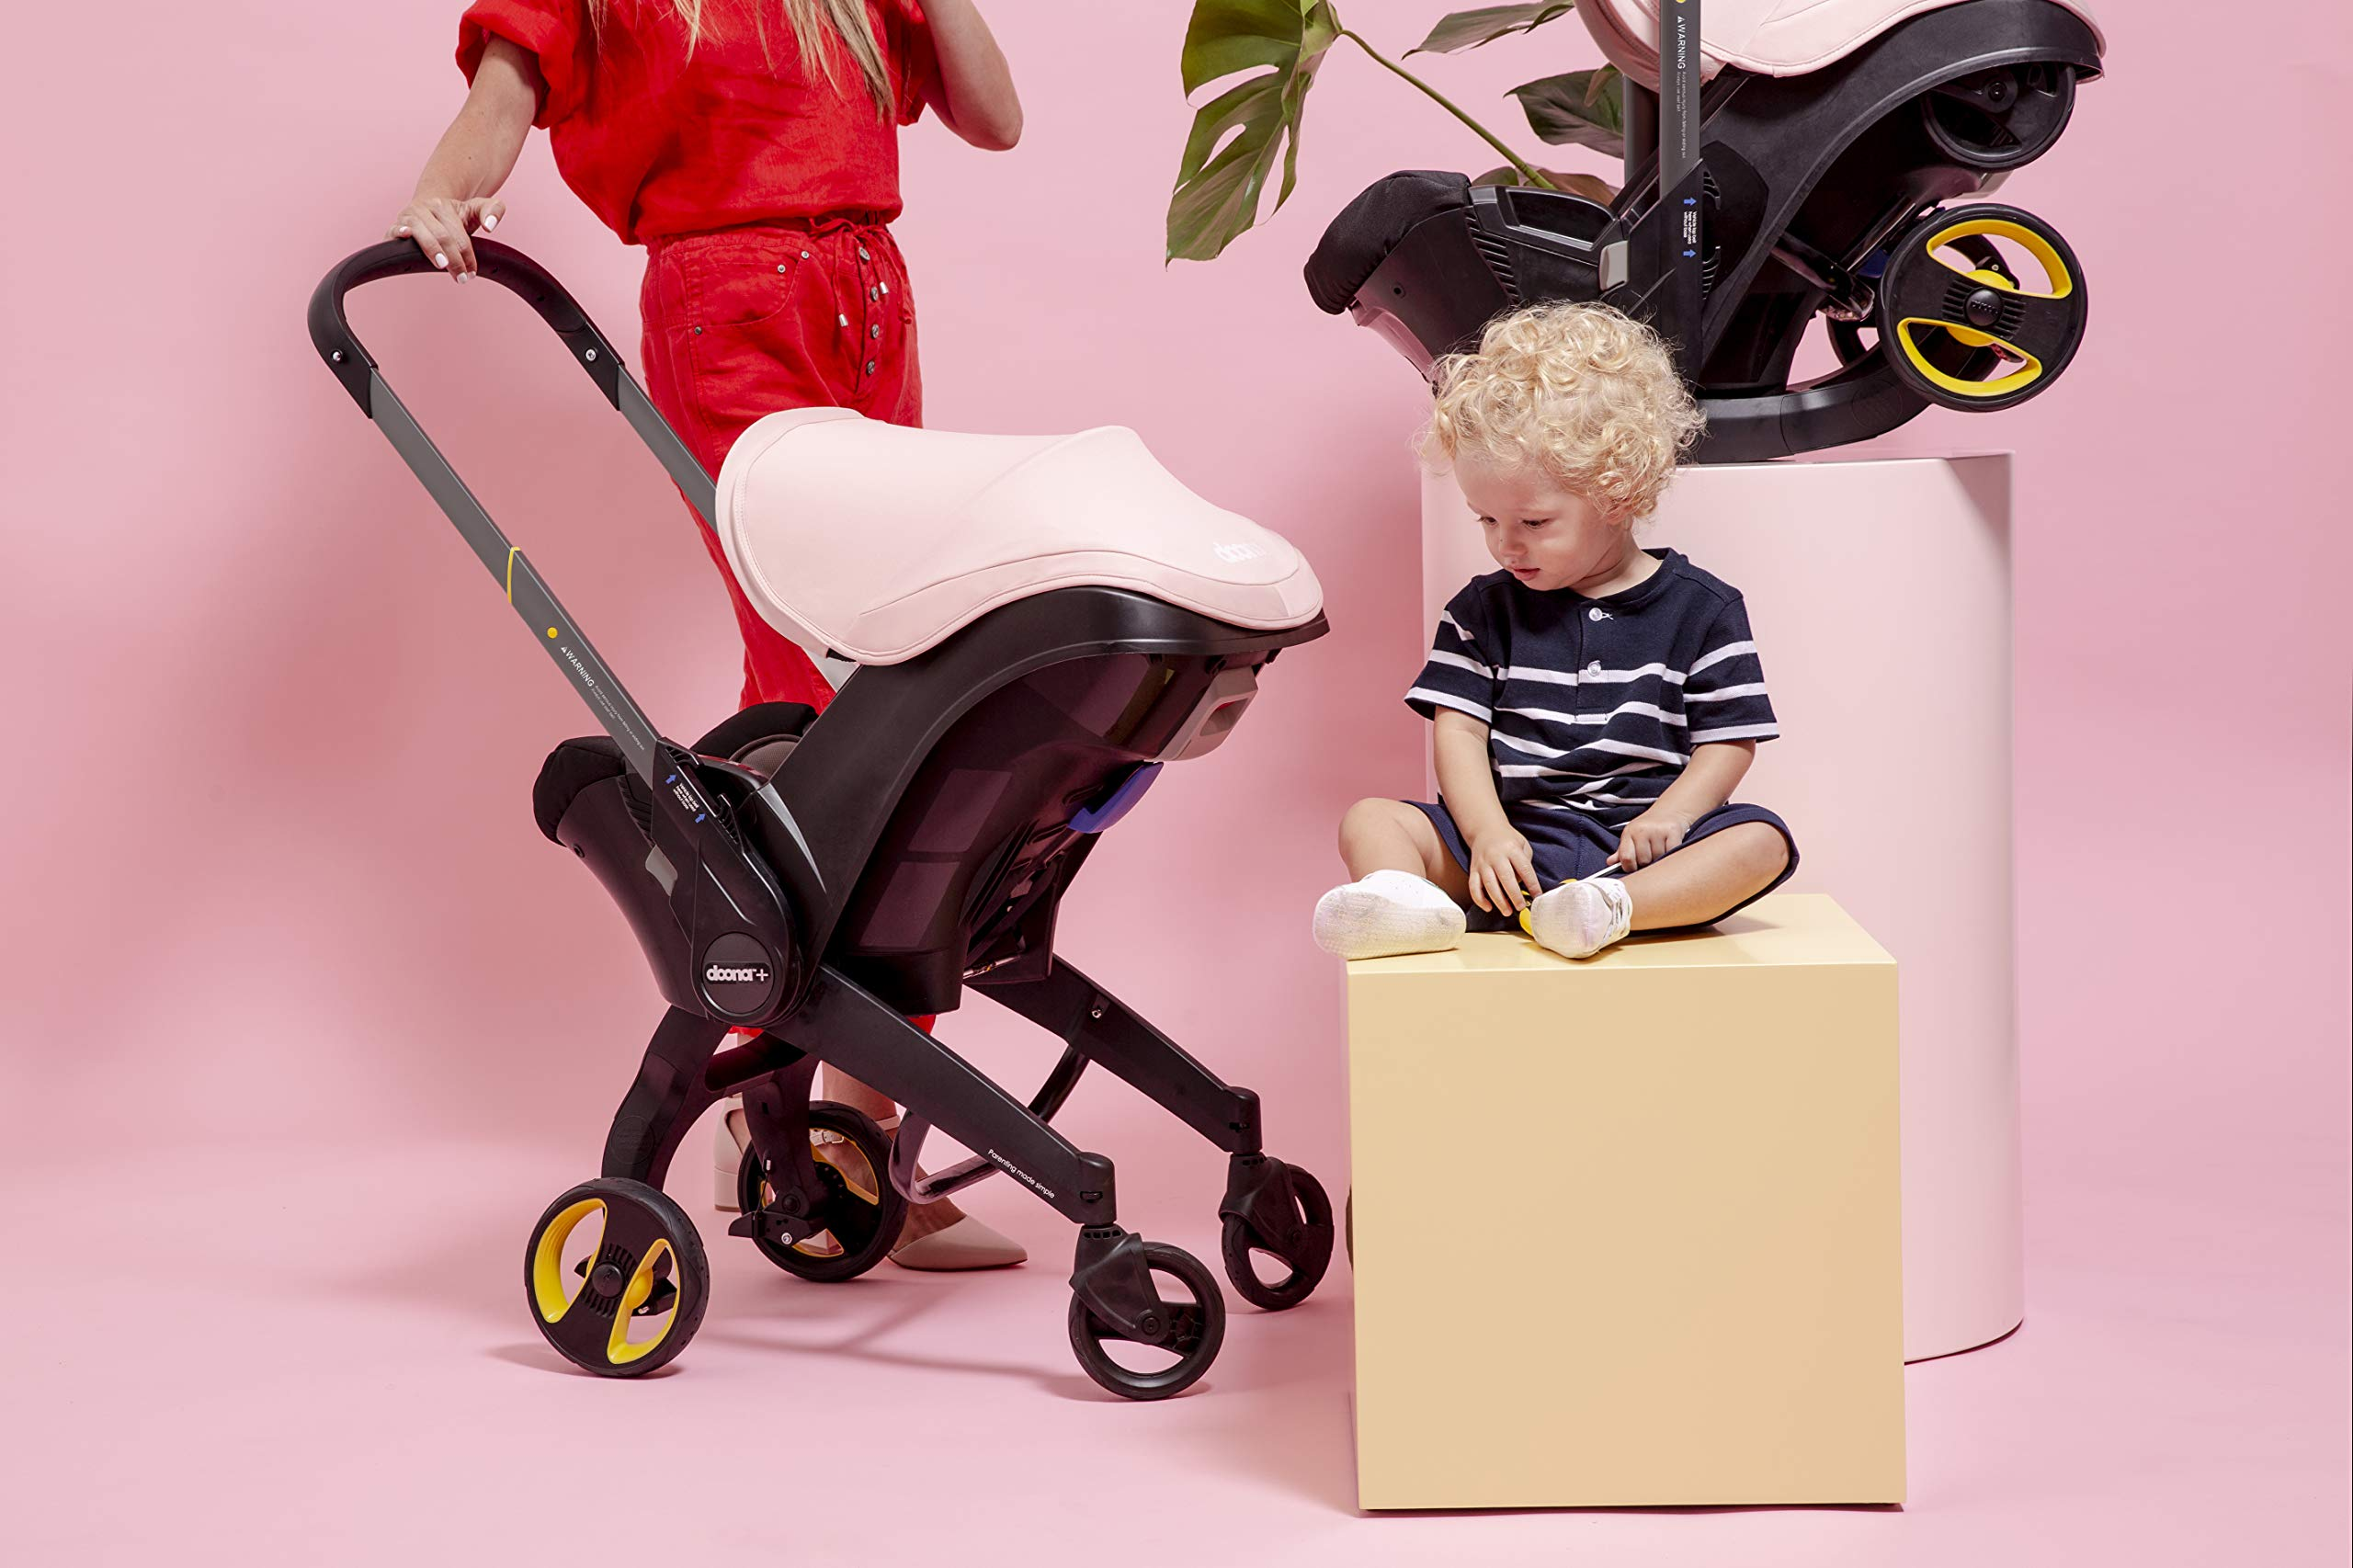 Doona Car Seat and Pram, Blush Pink, Revolutionary 0+ Car Seat that Folds Between Car Seat & Pram in Seconds, ISOFIX Base Available. Car Seat H60cm x W44cm, Pram H99cm x 82cm. Perfect for Travelling Doona  7